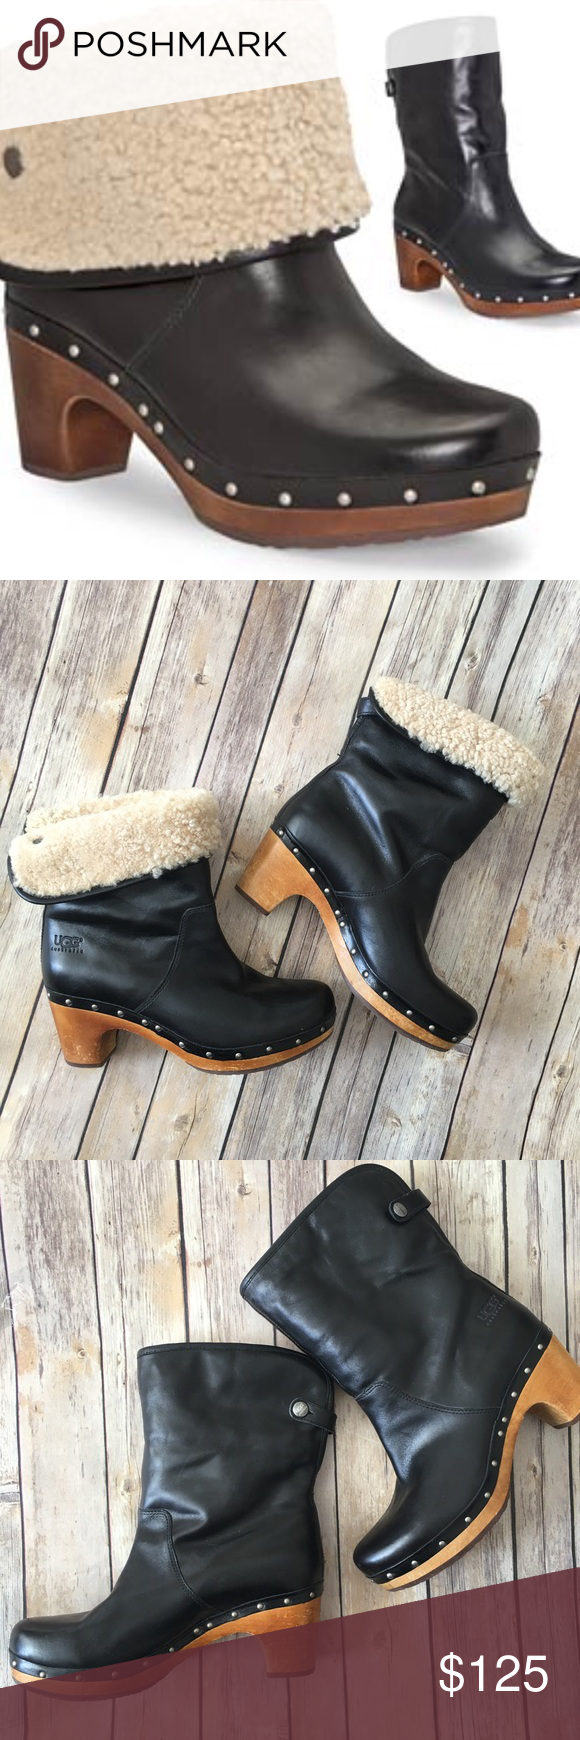 Ugg Boots Lynnea Shearling Studded Leather Wood Size 8. Very good used condition with only a few scruffs from minimal wear. There is a large black marker spot on the left bottom of the shoe. UGG Shoes Ankle Boots & Booties